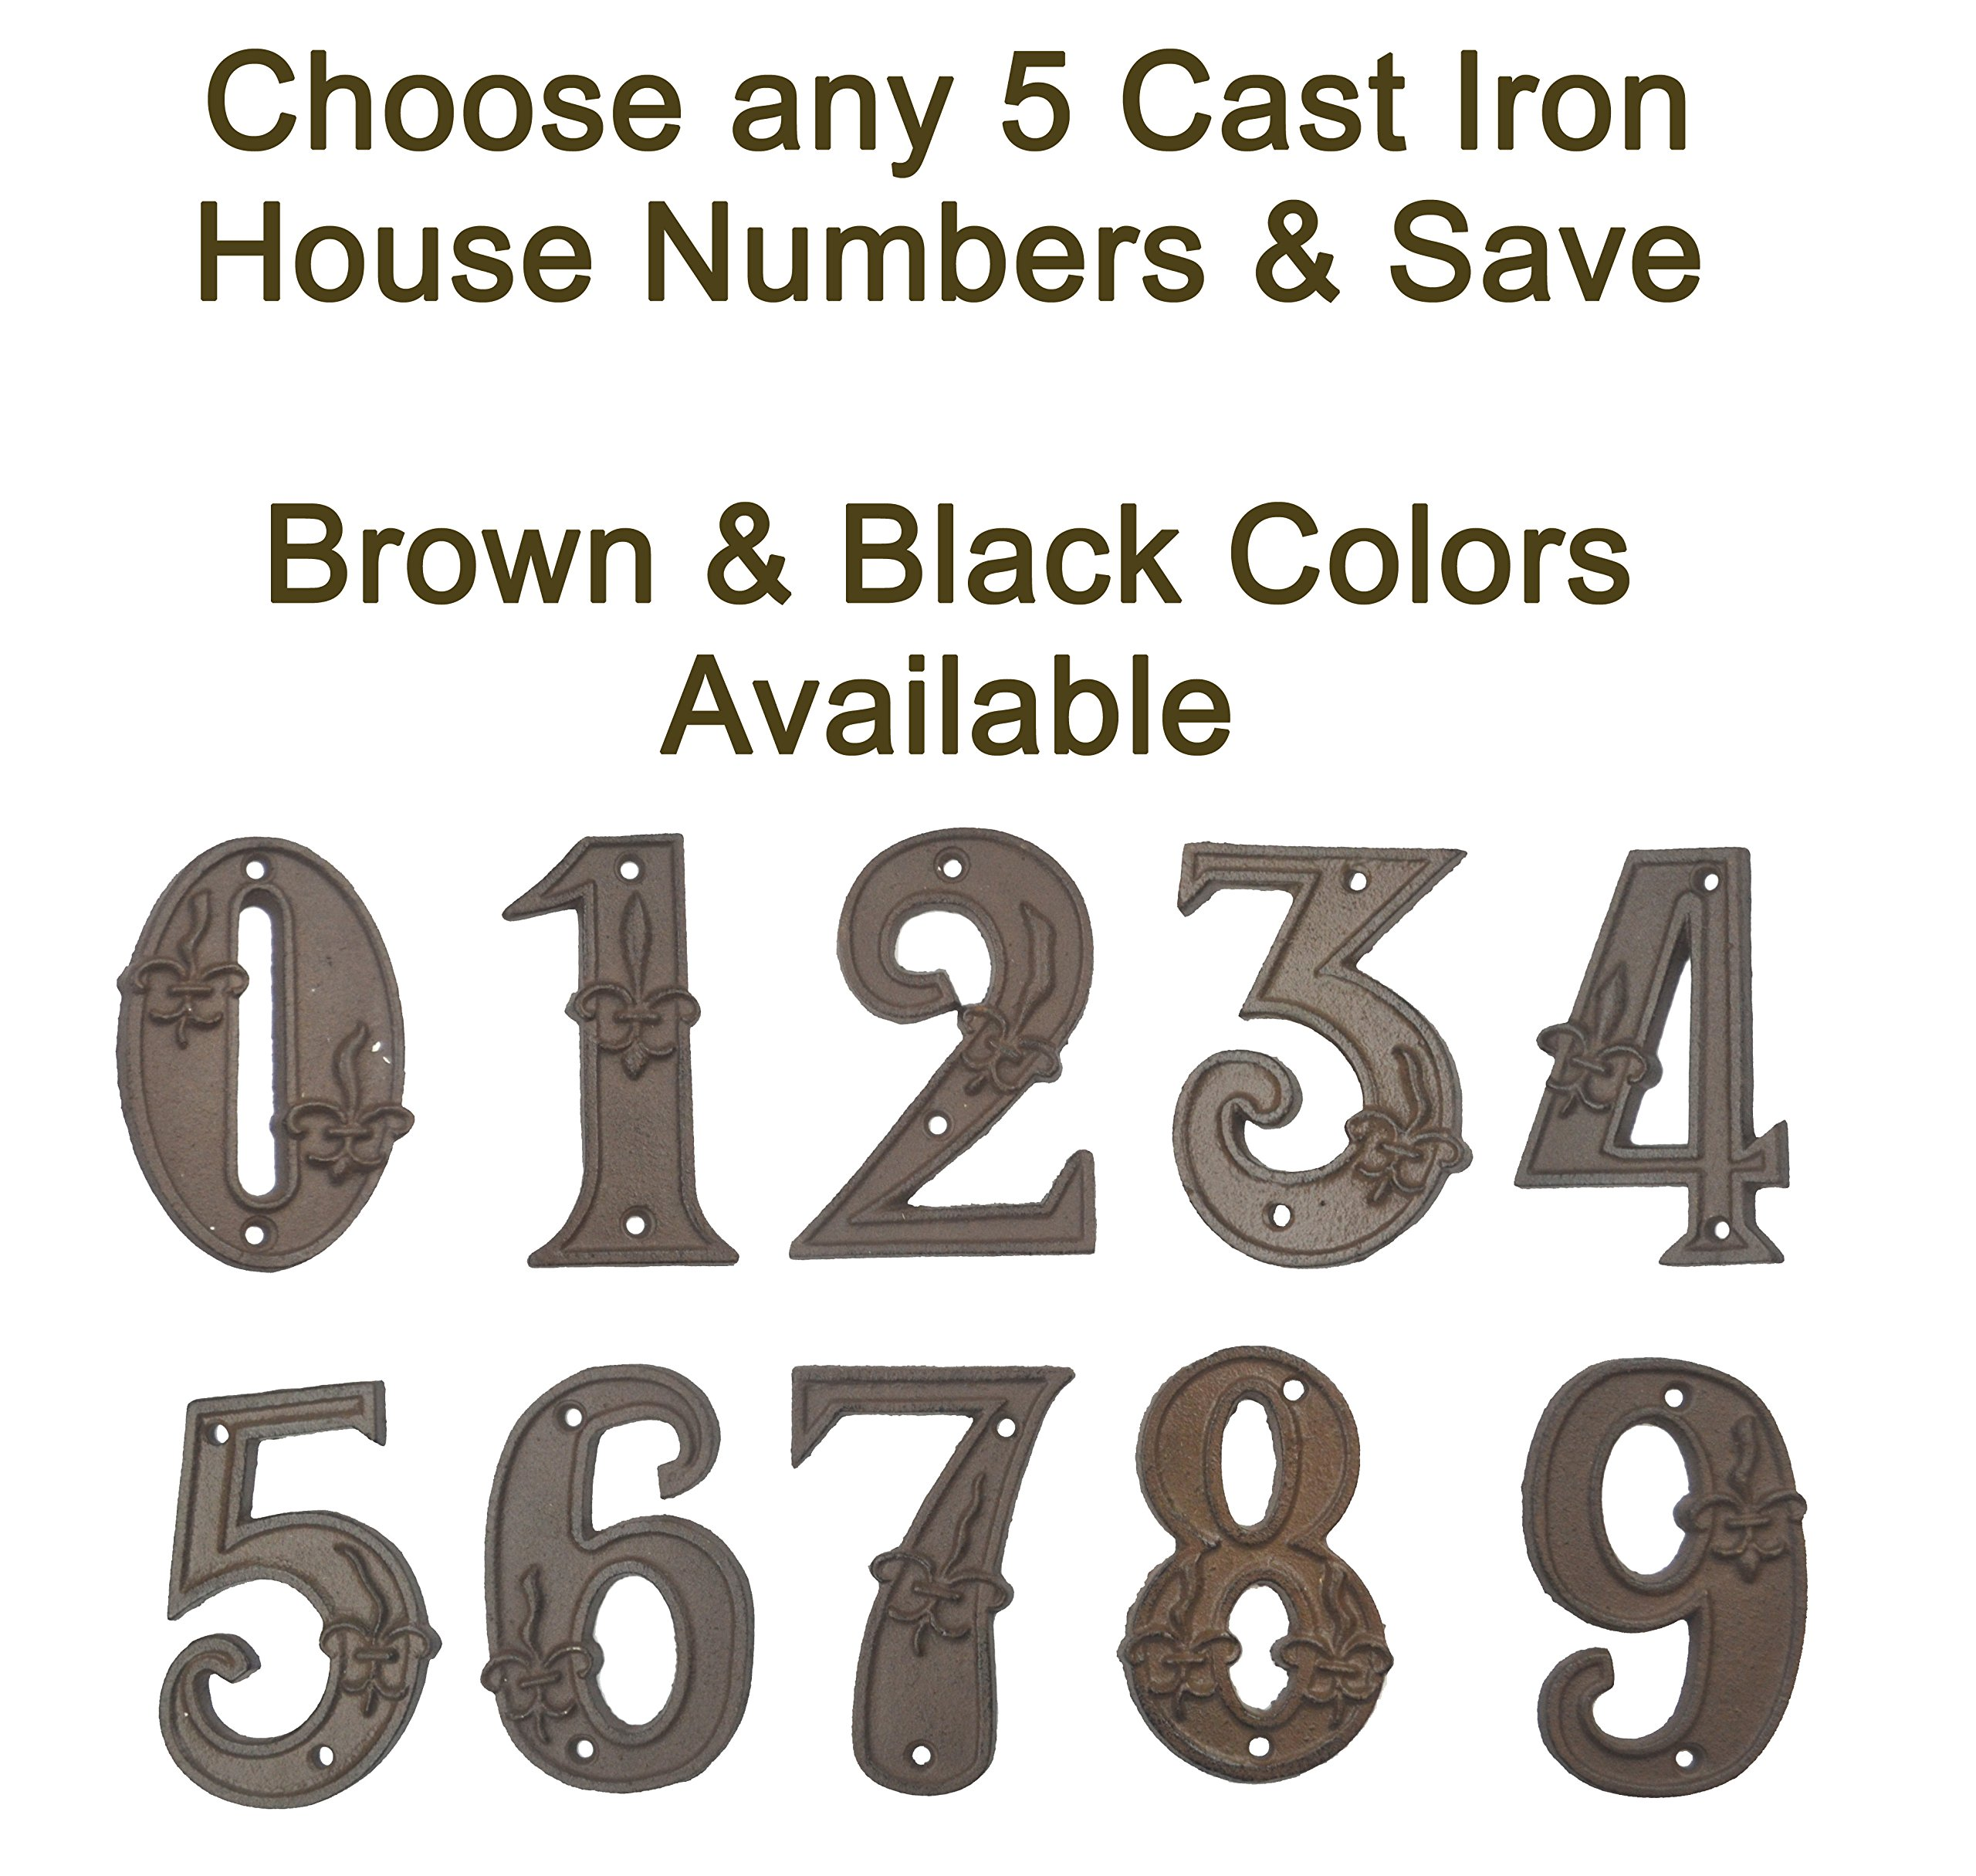 Lulu Decor, 100% Cast Iron House Numbers, Black or Brown with Fleur De Lis (Any 5 Numbers, Bulk Discount)